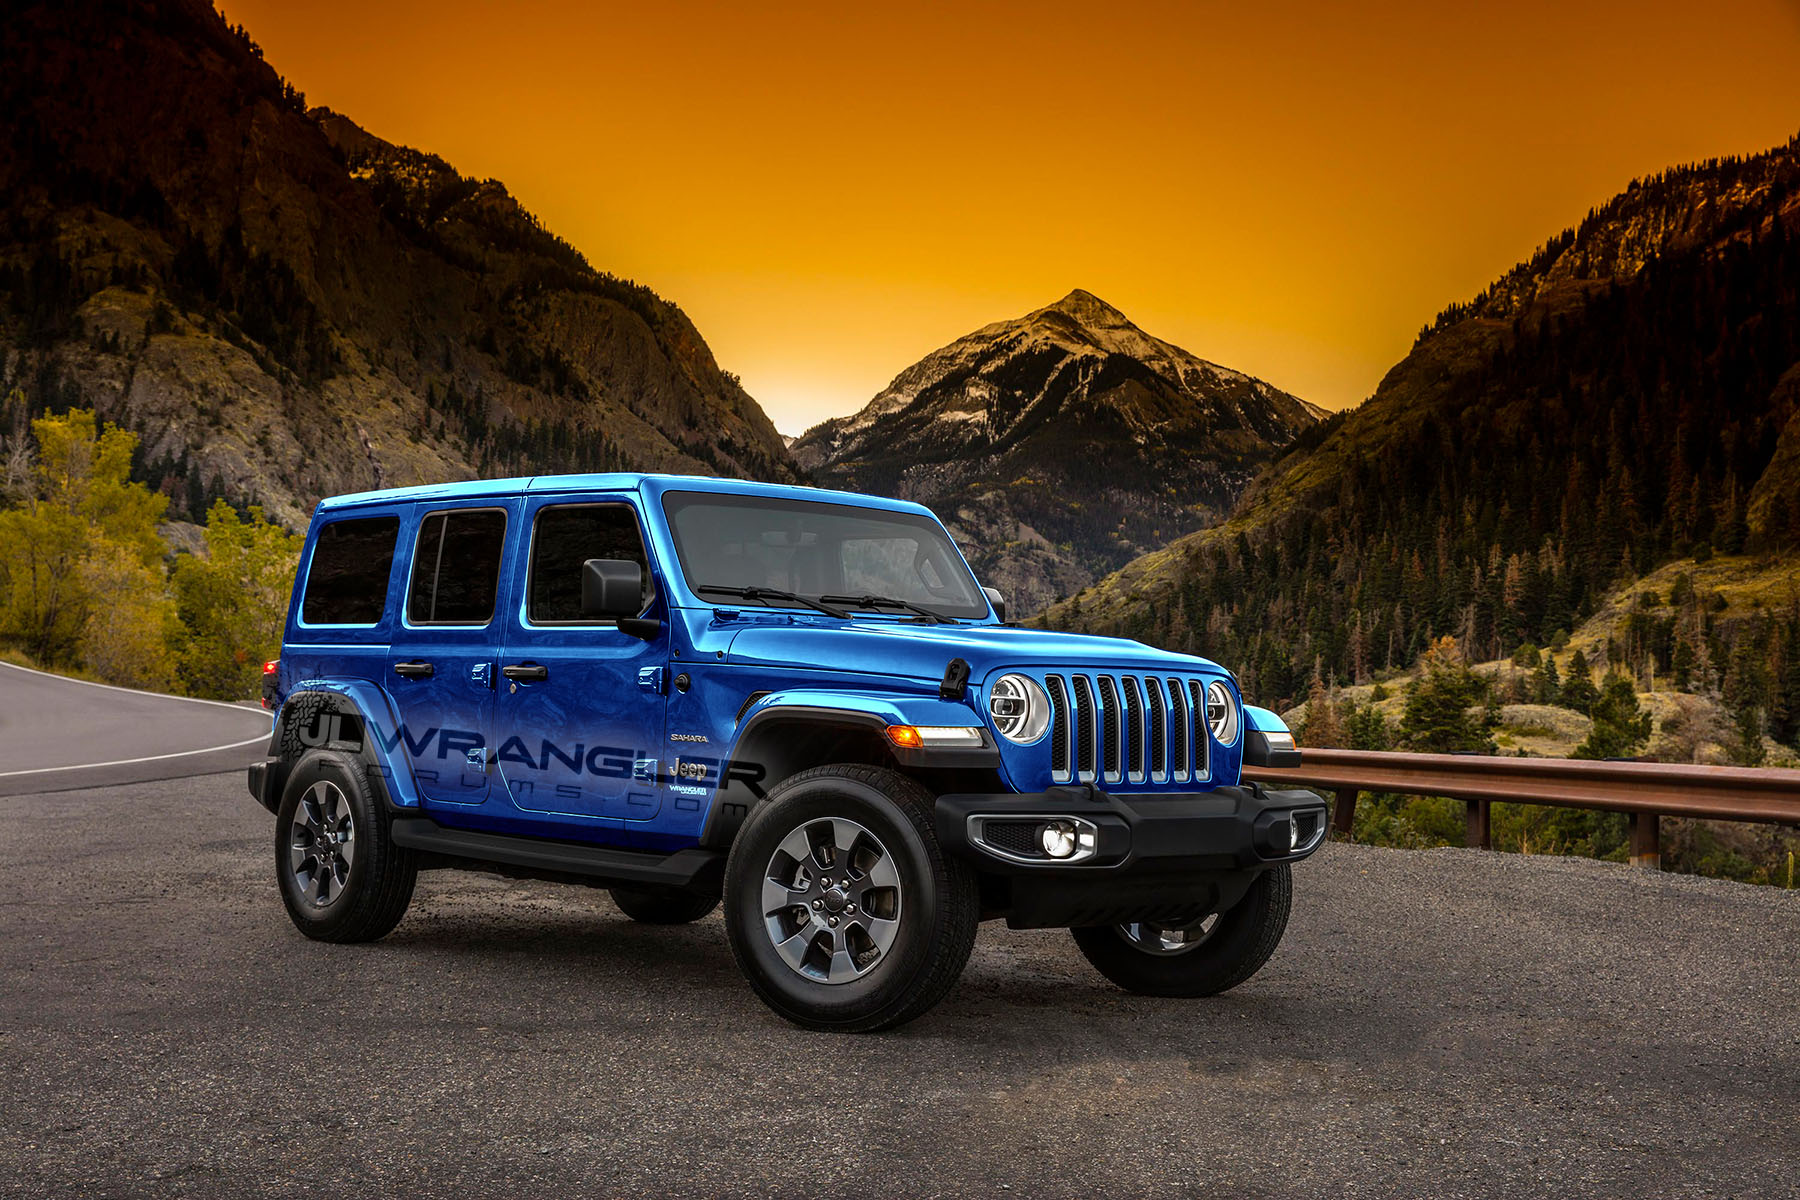 New Jeep Truck >> More 2018 Wrangler JL Colors Coming - Nacho, Mojito!, Punk'n, Ocean Blue, Sting-Gray (with ...